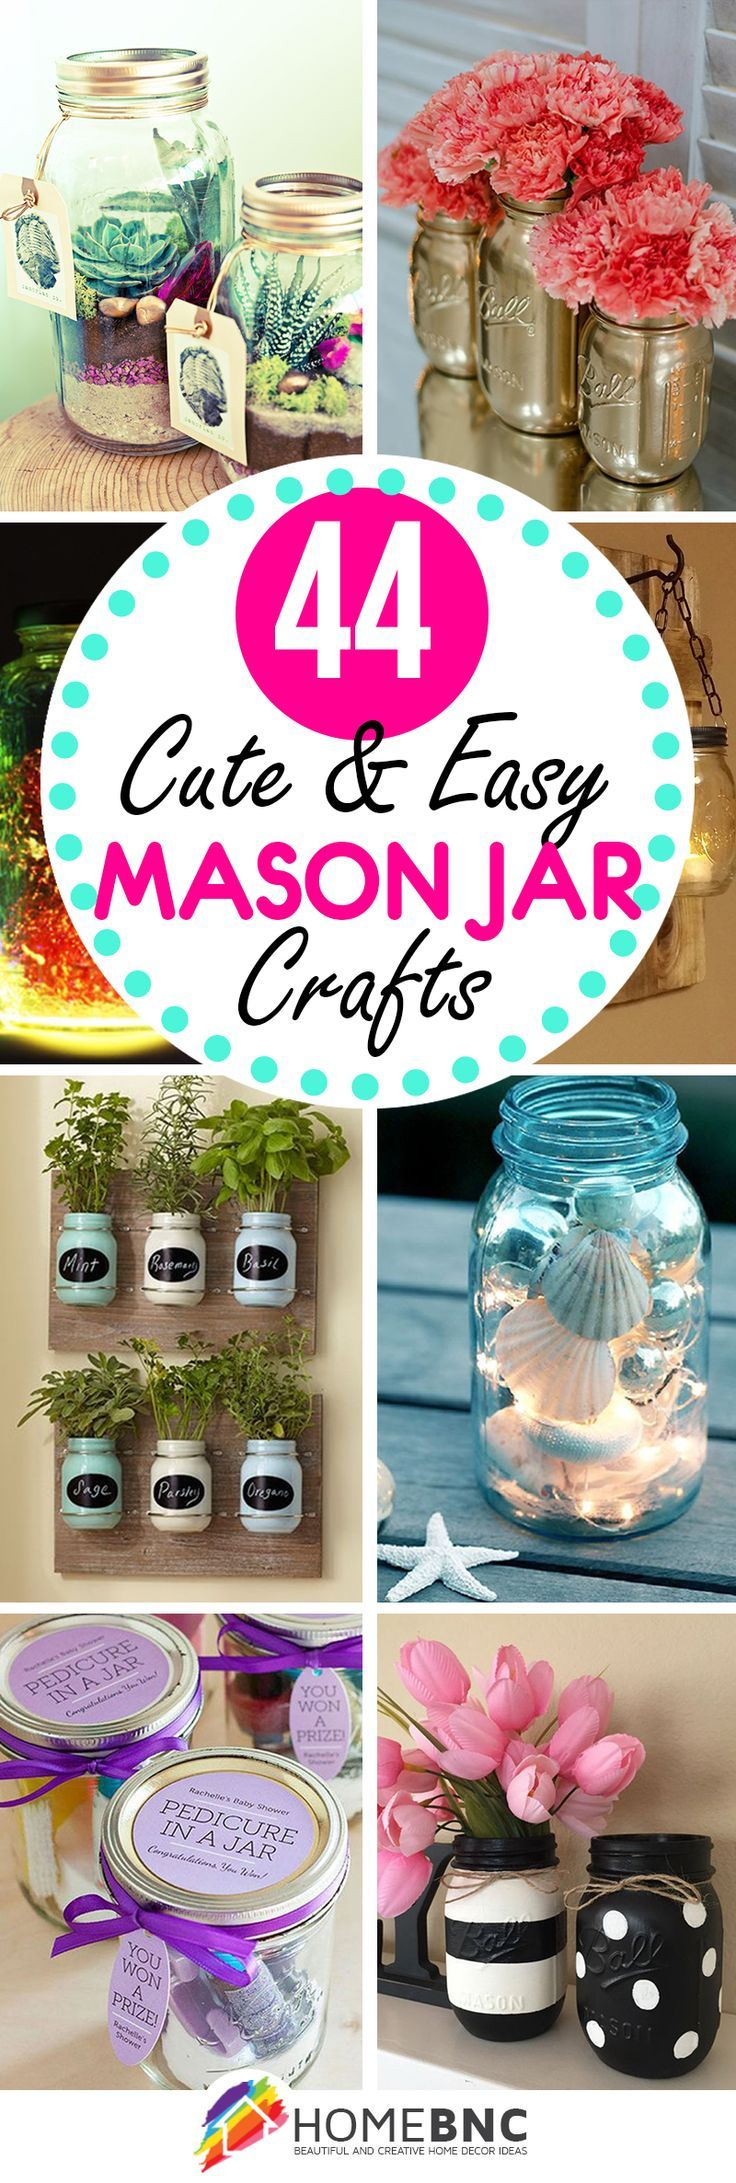 Get Creative With These 50 Diy Mason Jar Crafts Diy Jar Crafts Mason Jar Crafts Jar Crafts